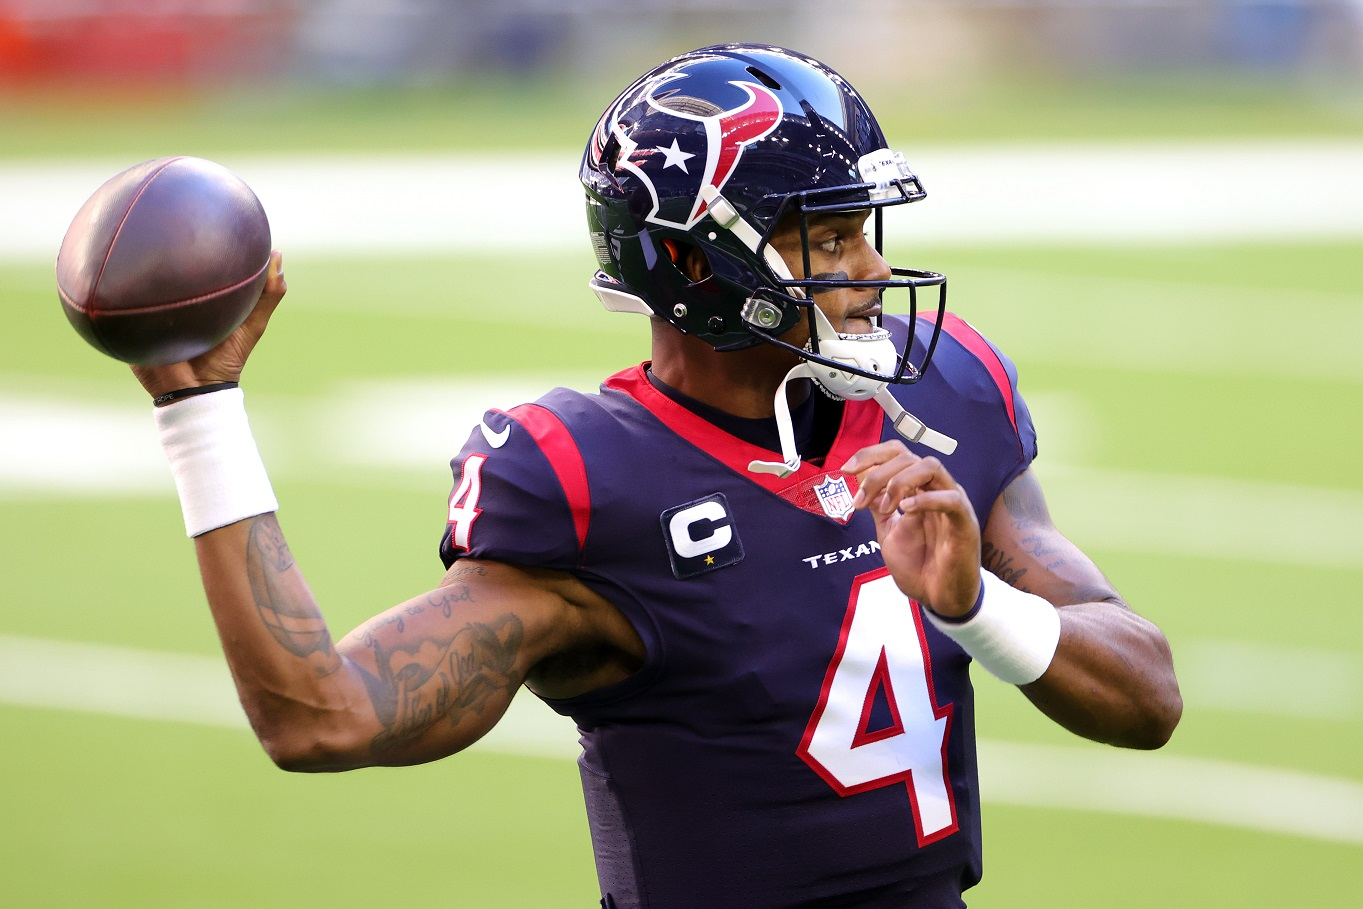 A 'Humbled' Deshaun Watson Has Urged Disgruntled Texans Fans to Stay Home